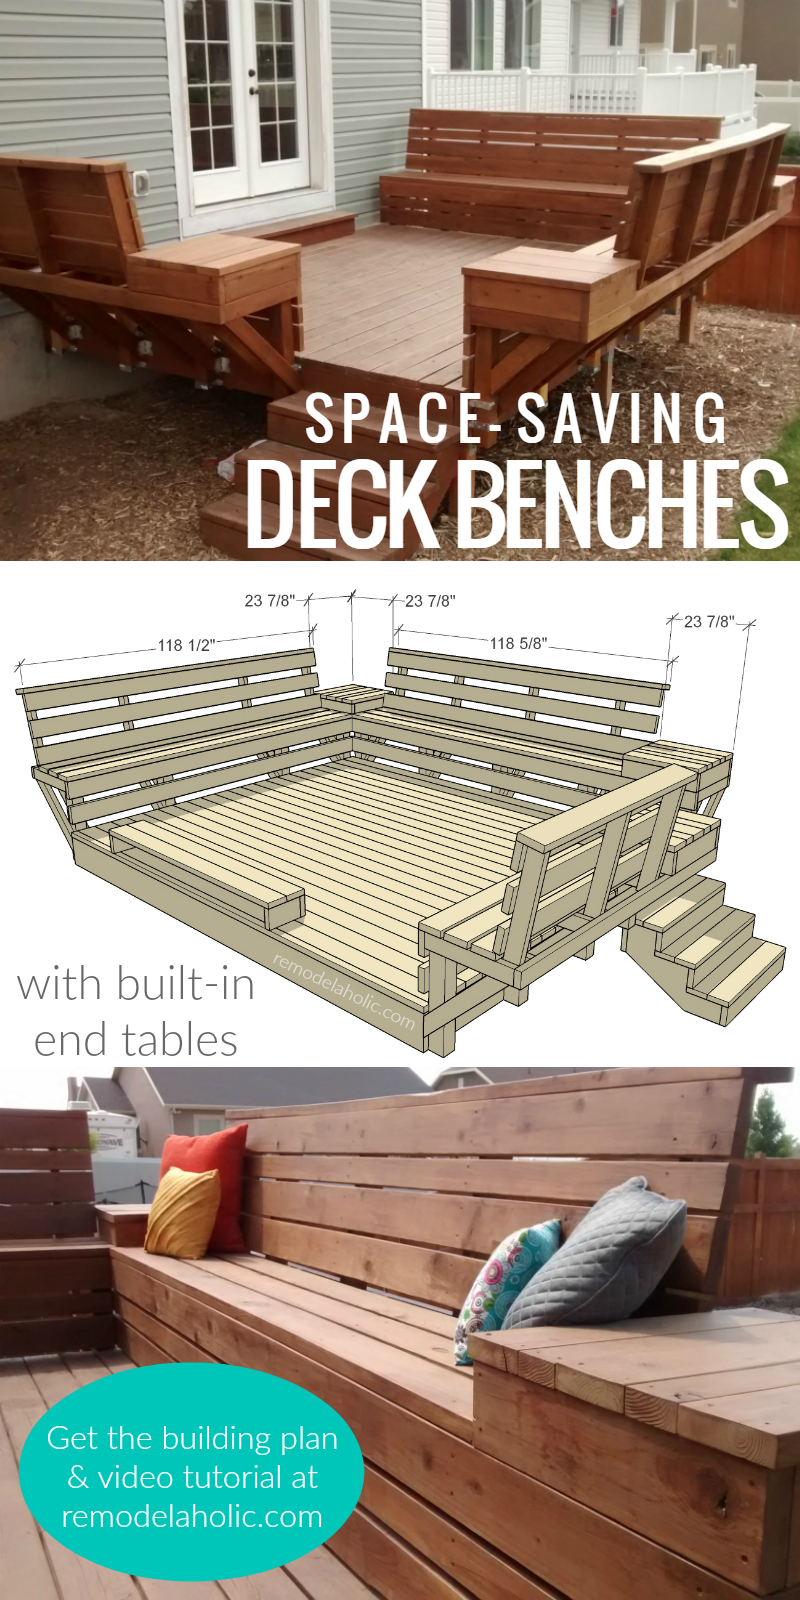 Albert Blog: How to Build Space-Saving Deck Benches for a ...